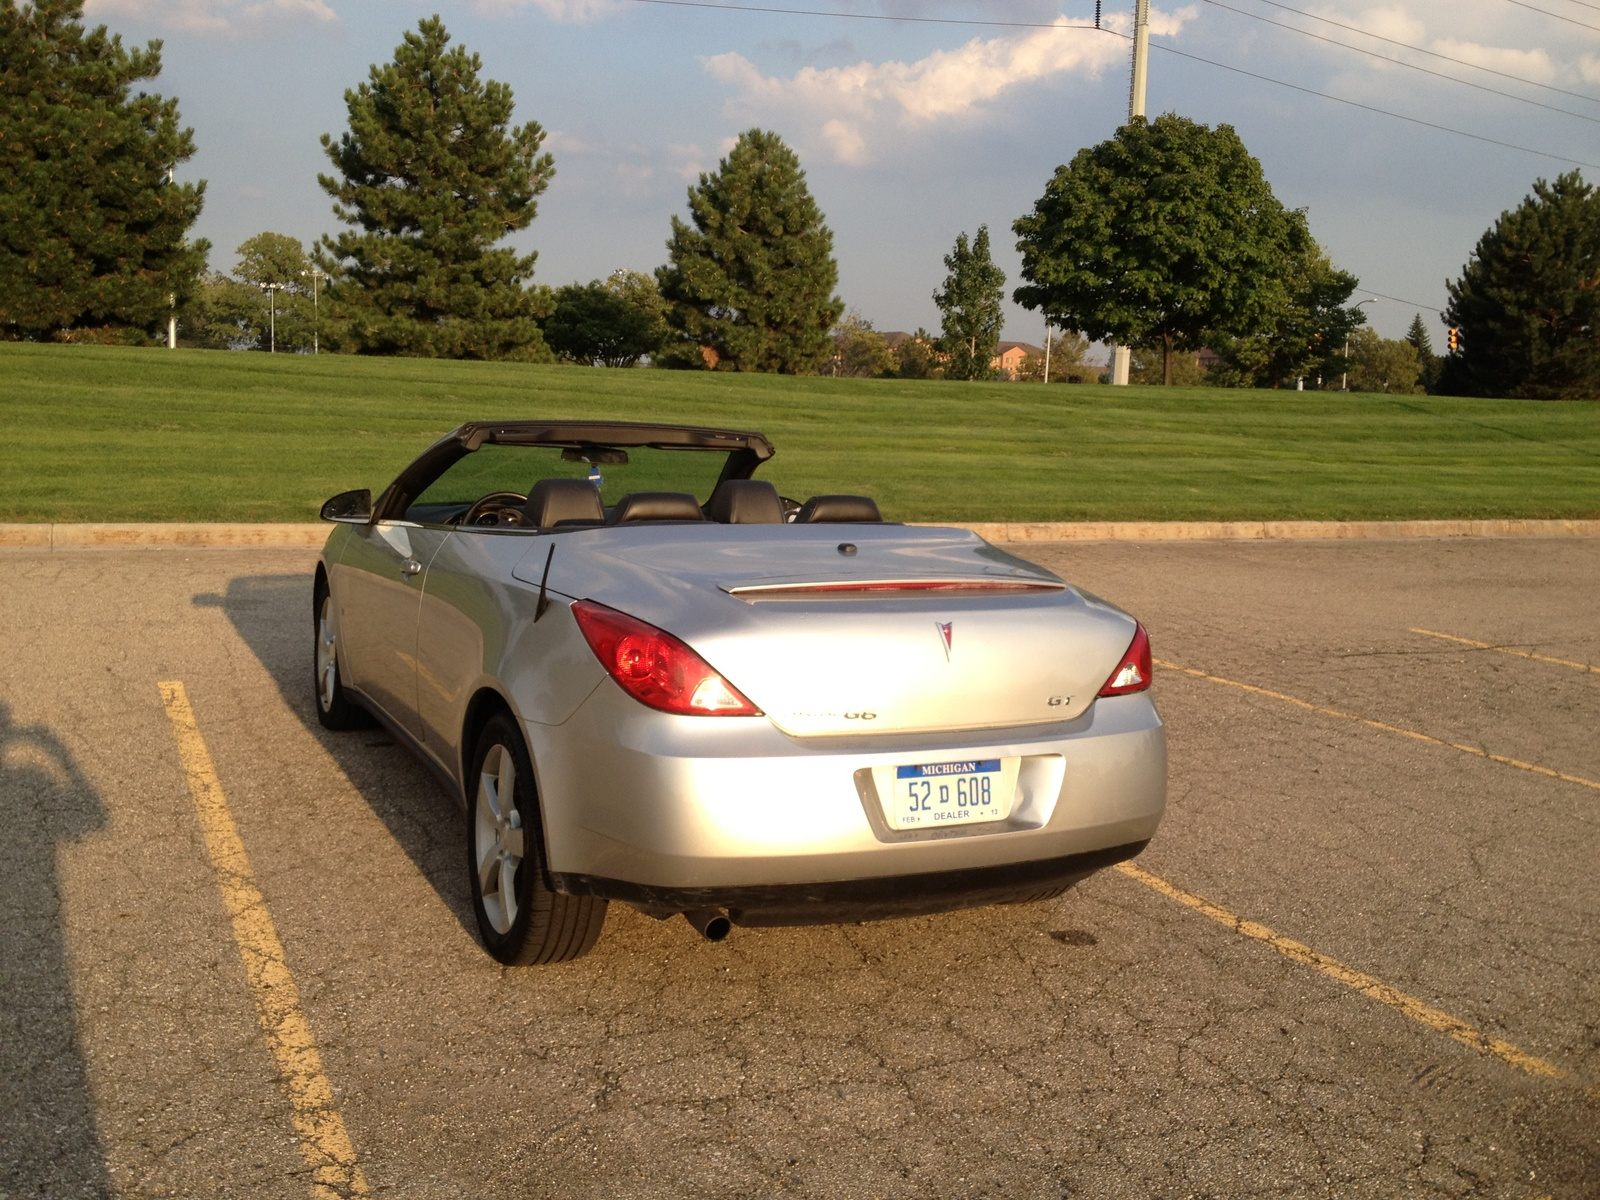 2007 Pontiac G6 GT Convertible - Pictures - Picture of 2007 Pontiac G6 ...